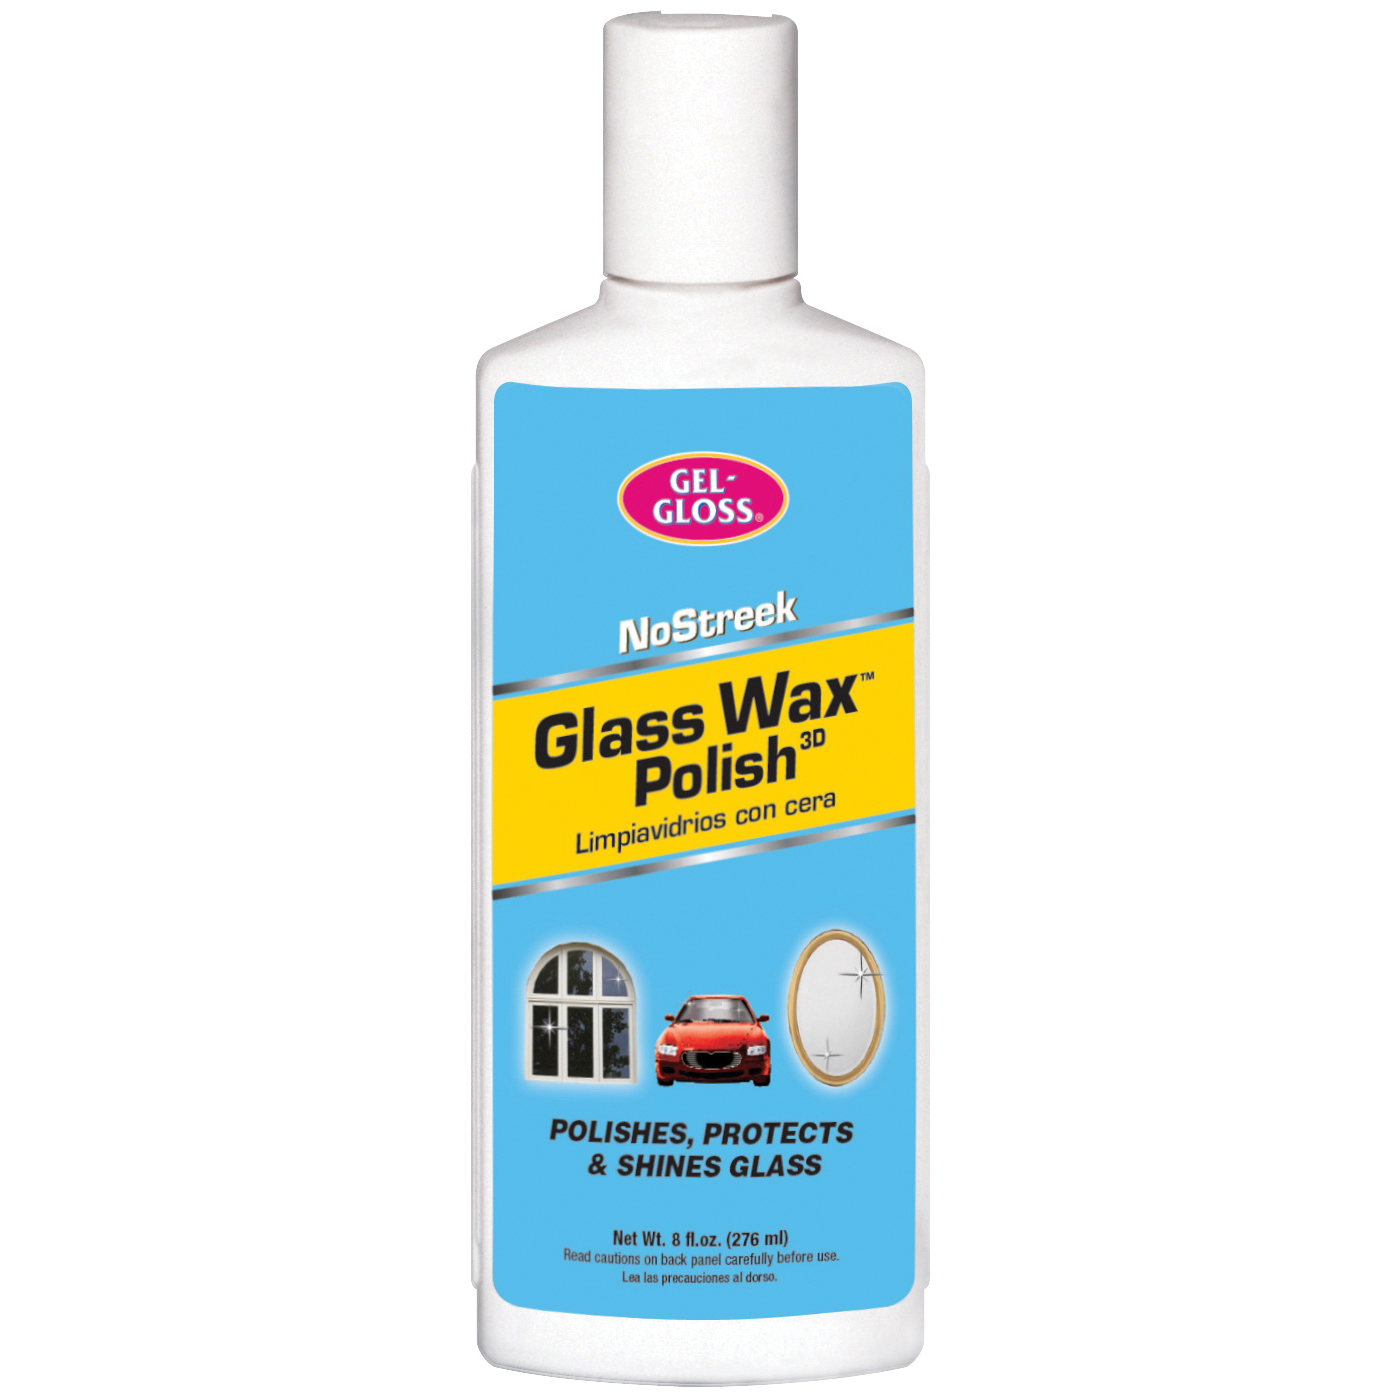 Picture of Gel-Gloss NS-8 Glass Wax Cleaner, 8 oz Package, Bottle, Characteristic, Yellowish Green